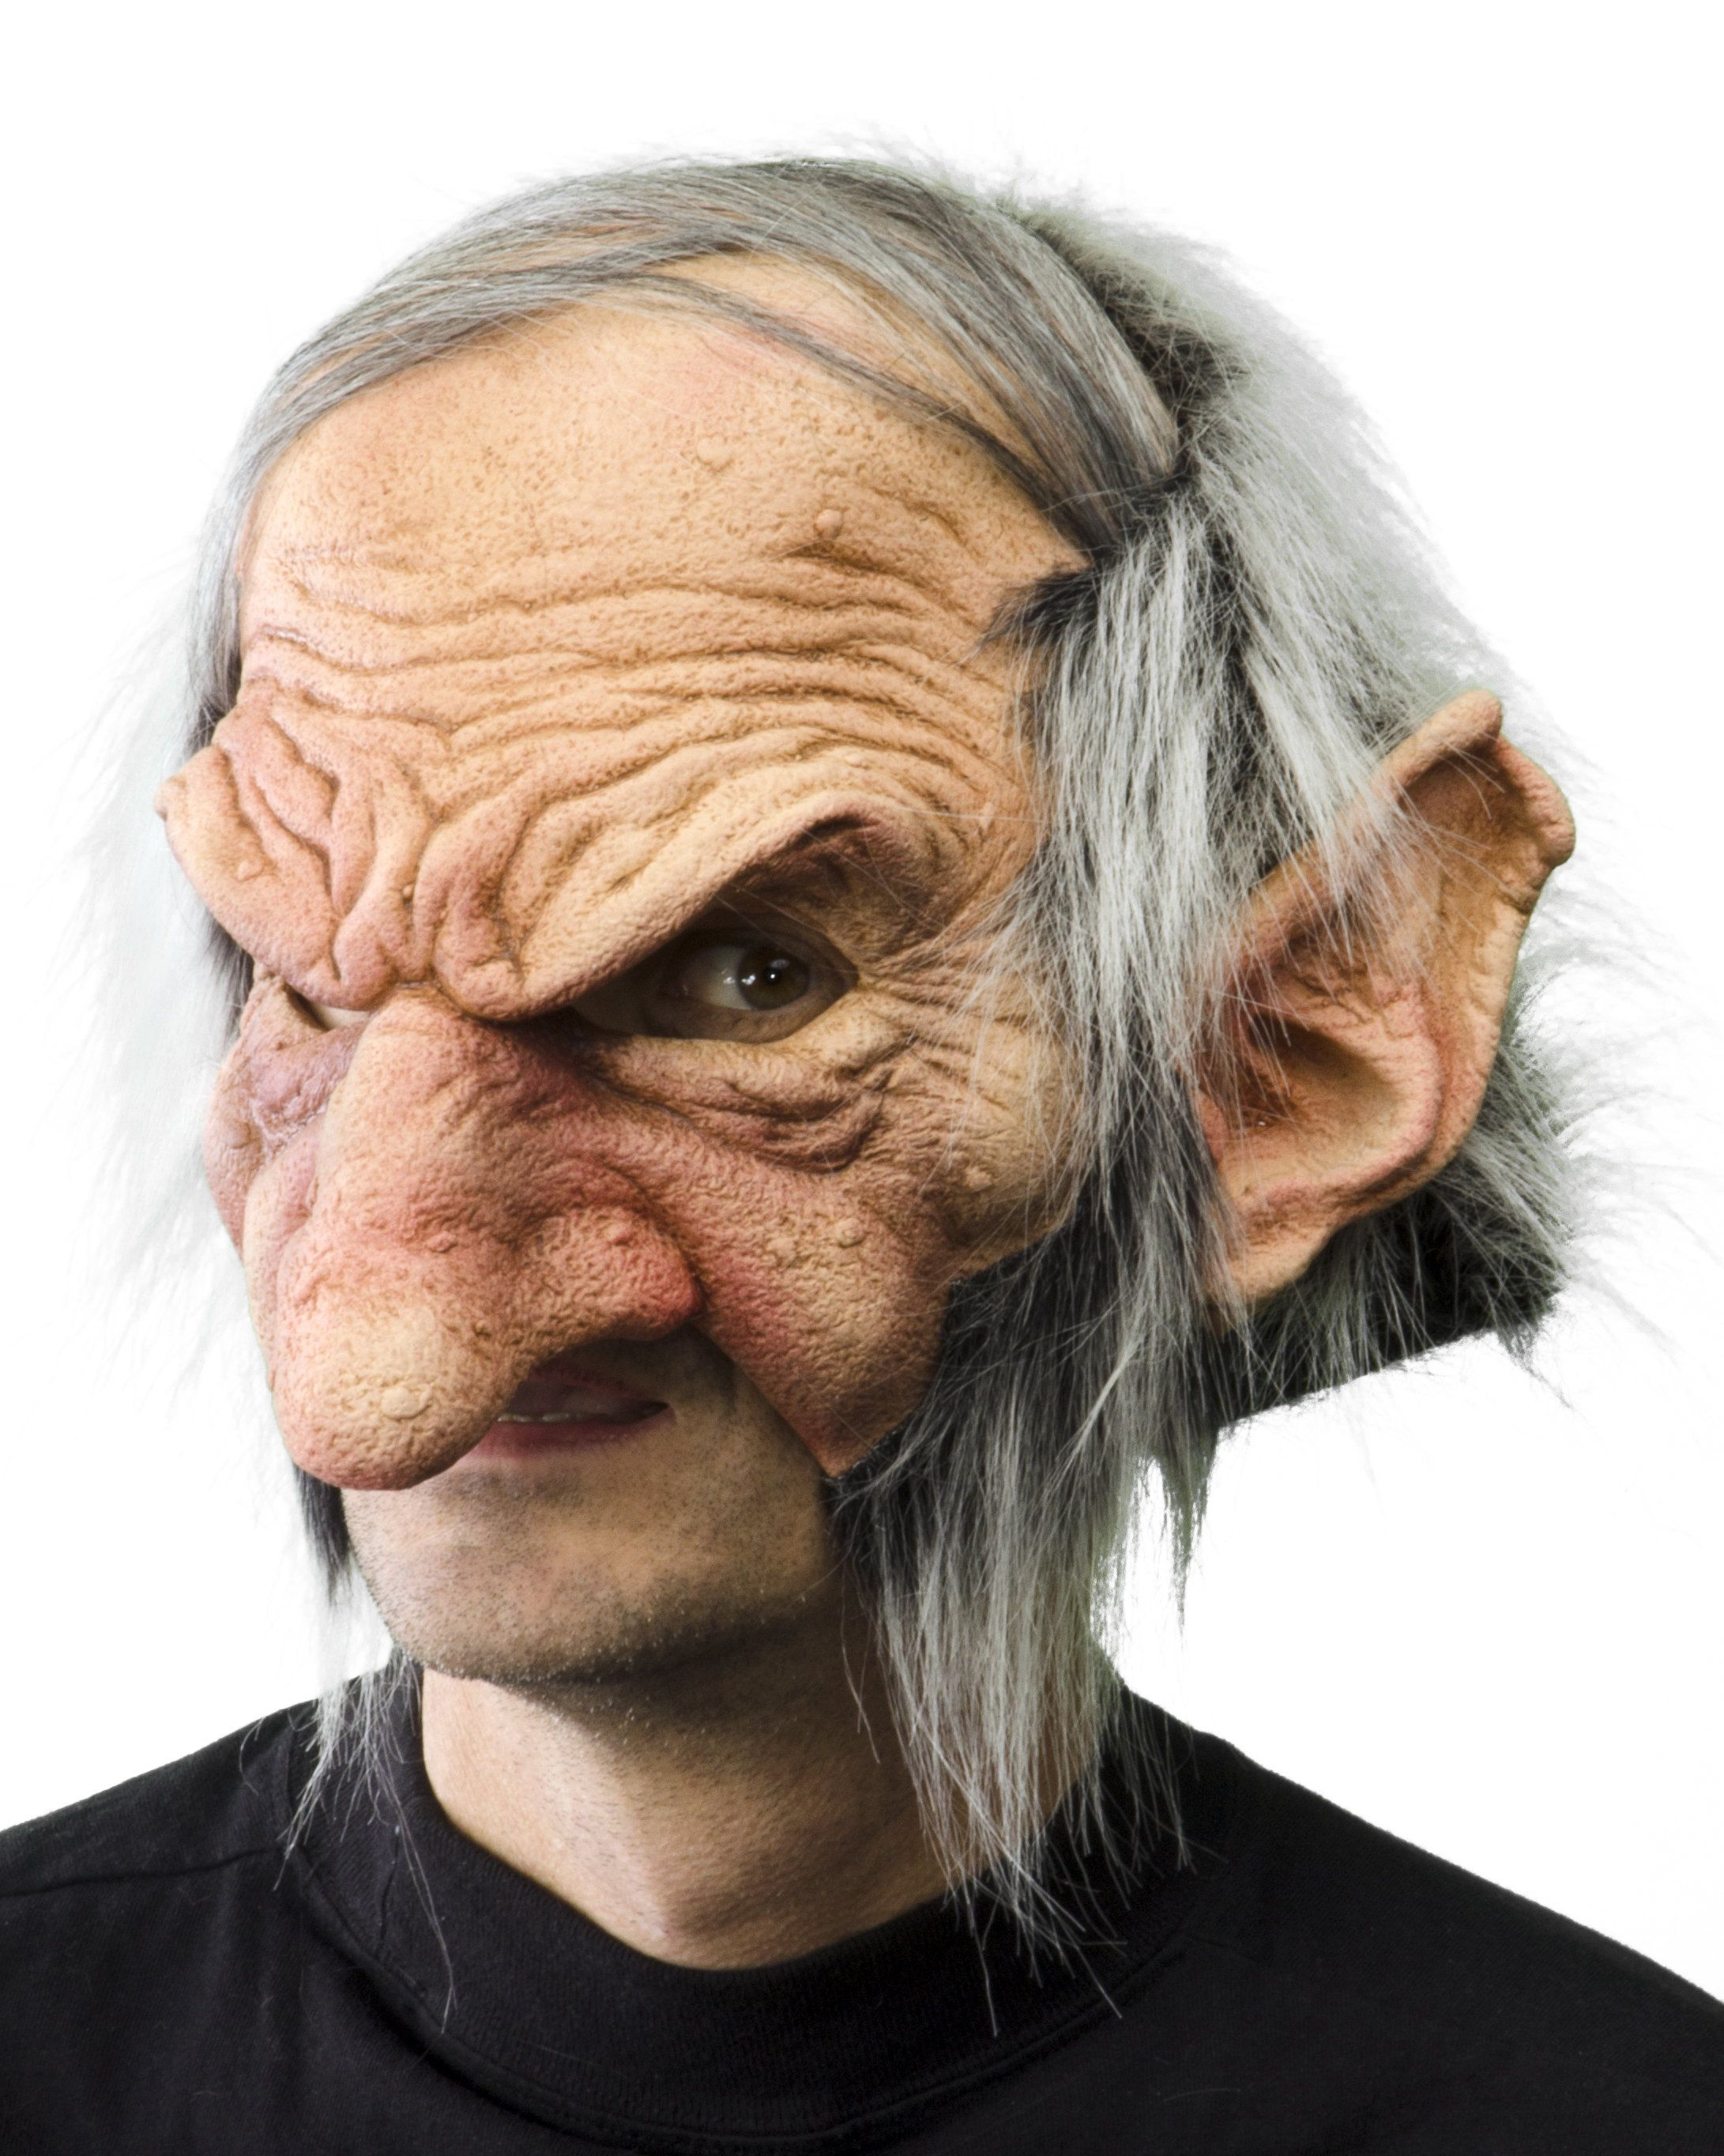 Harry Potter Halloween Party 2020 Dc Gobblin Gnome Mask Soft White Hair Old Man Wrinkles Halloween